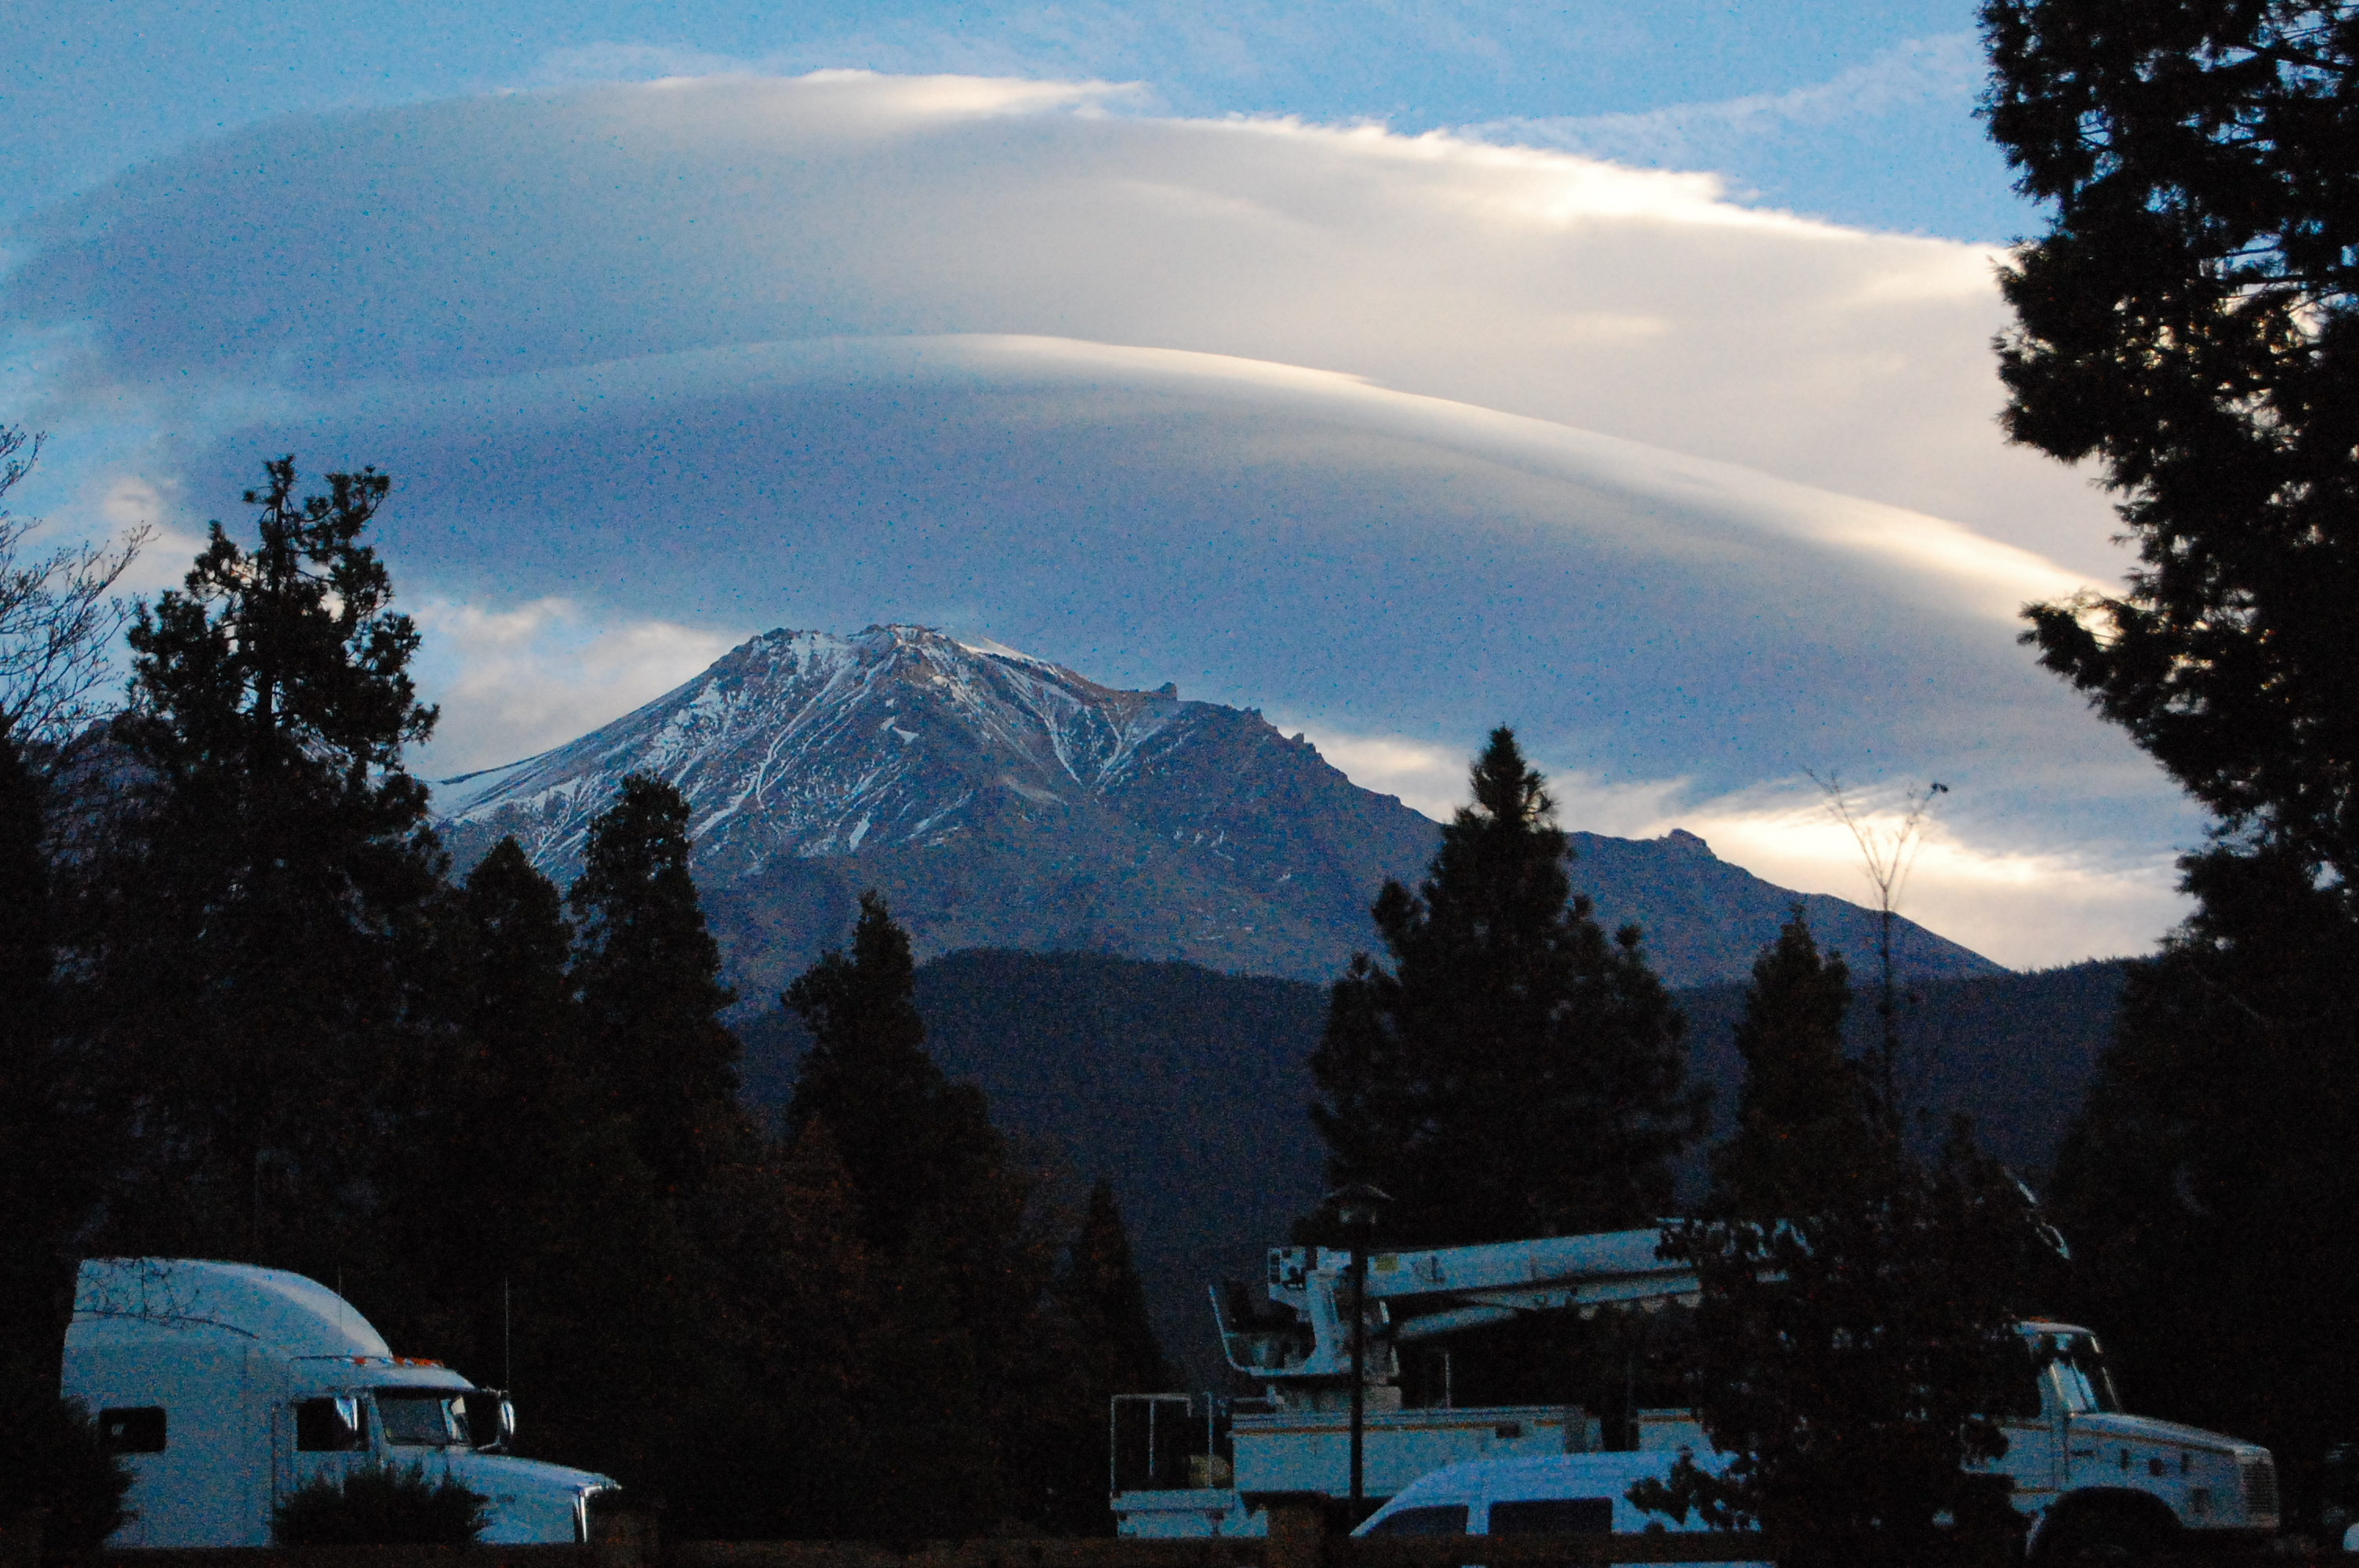 View of Mount Shasta